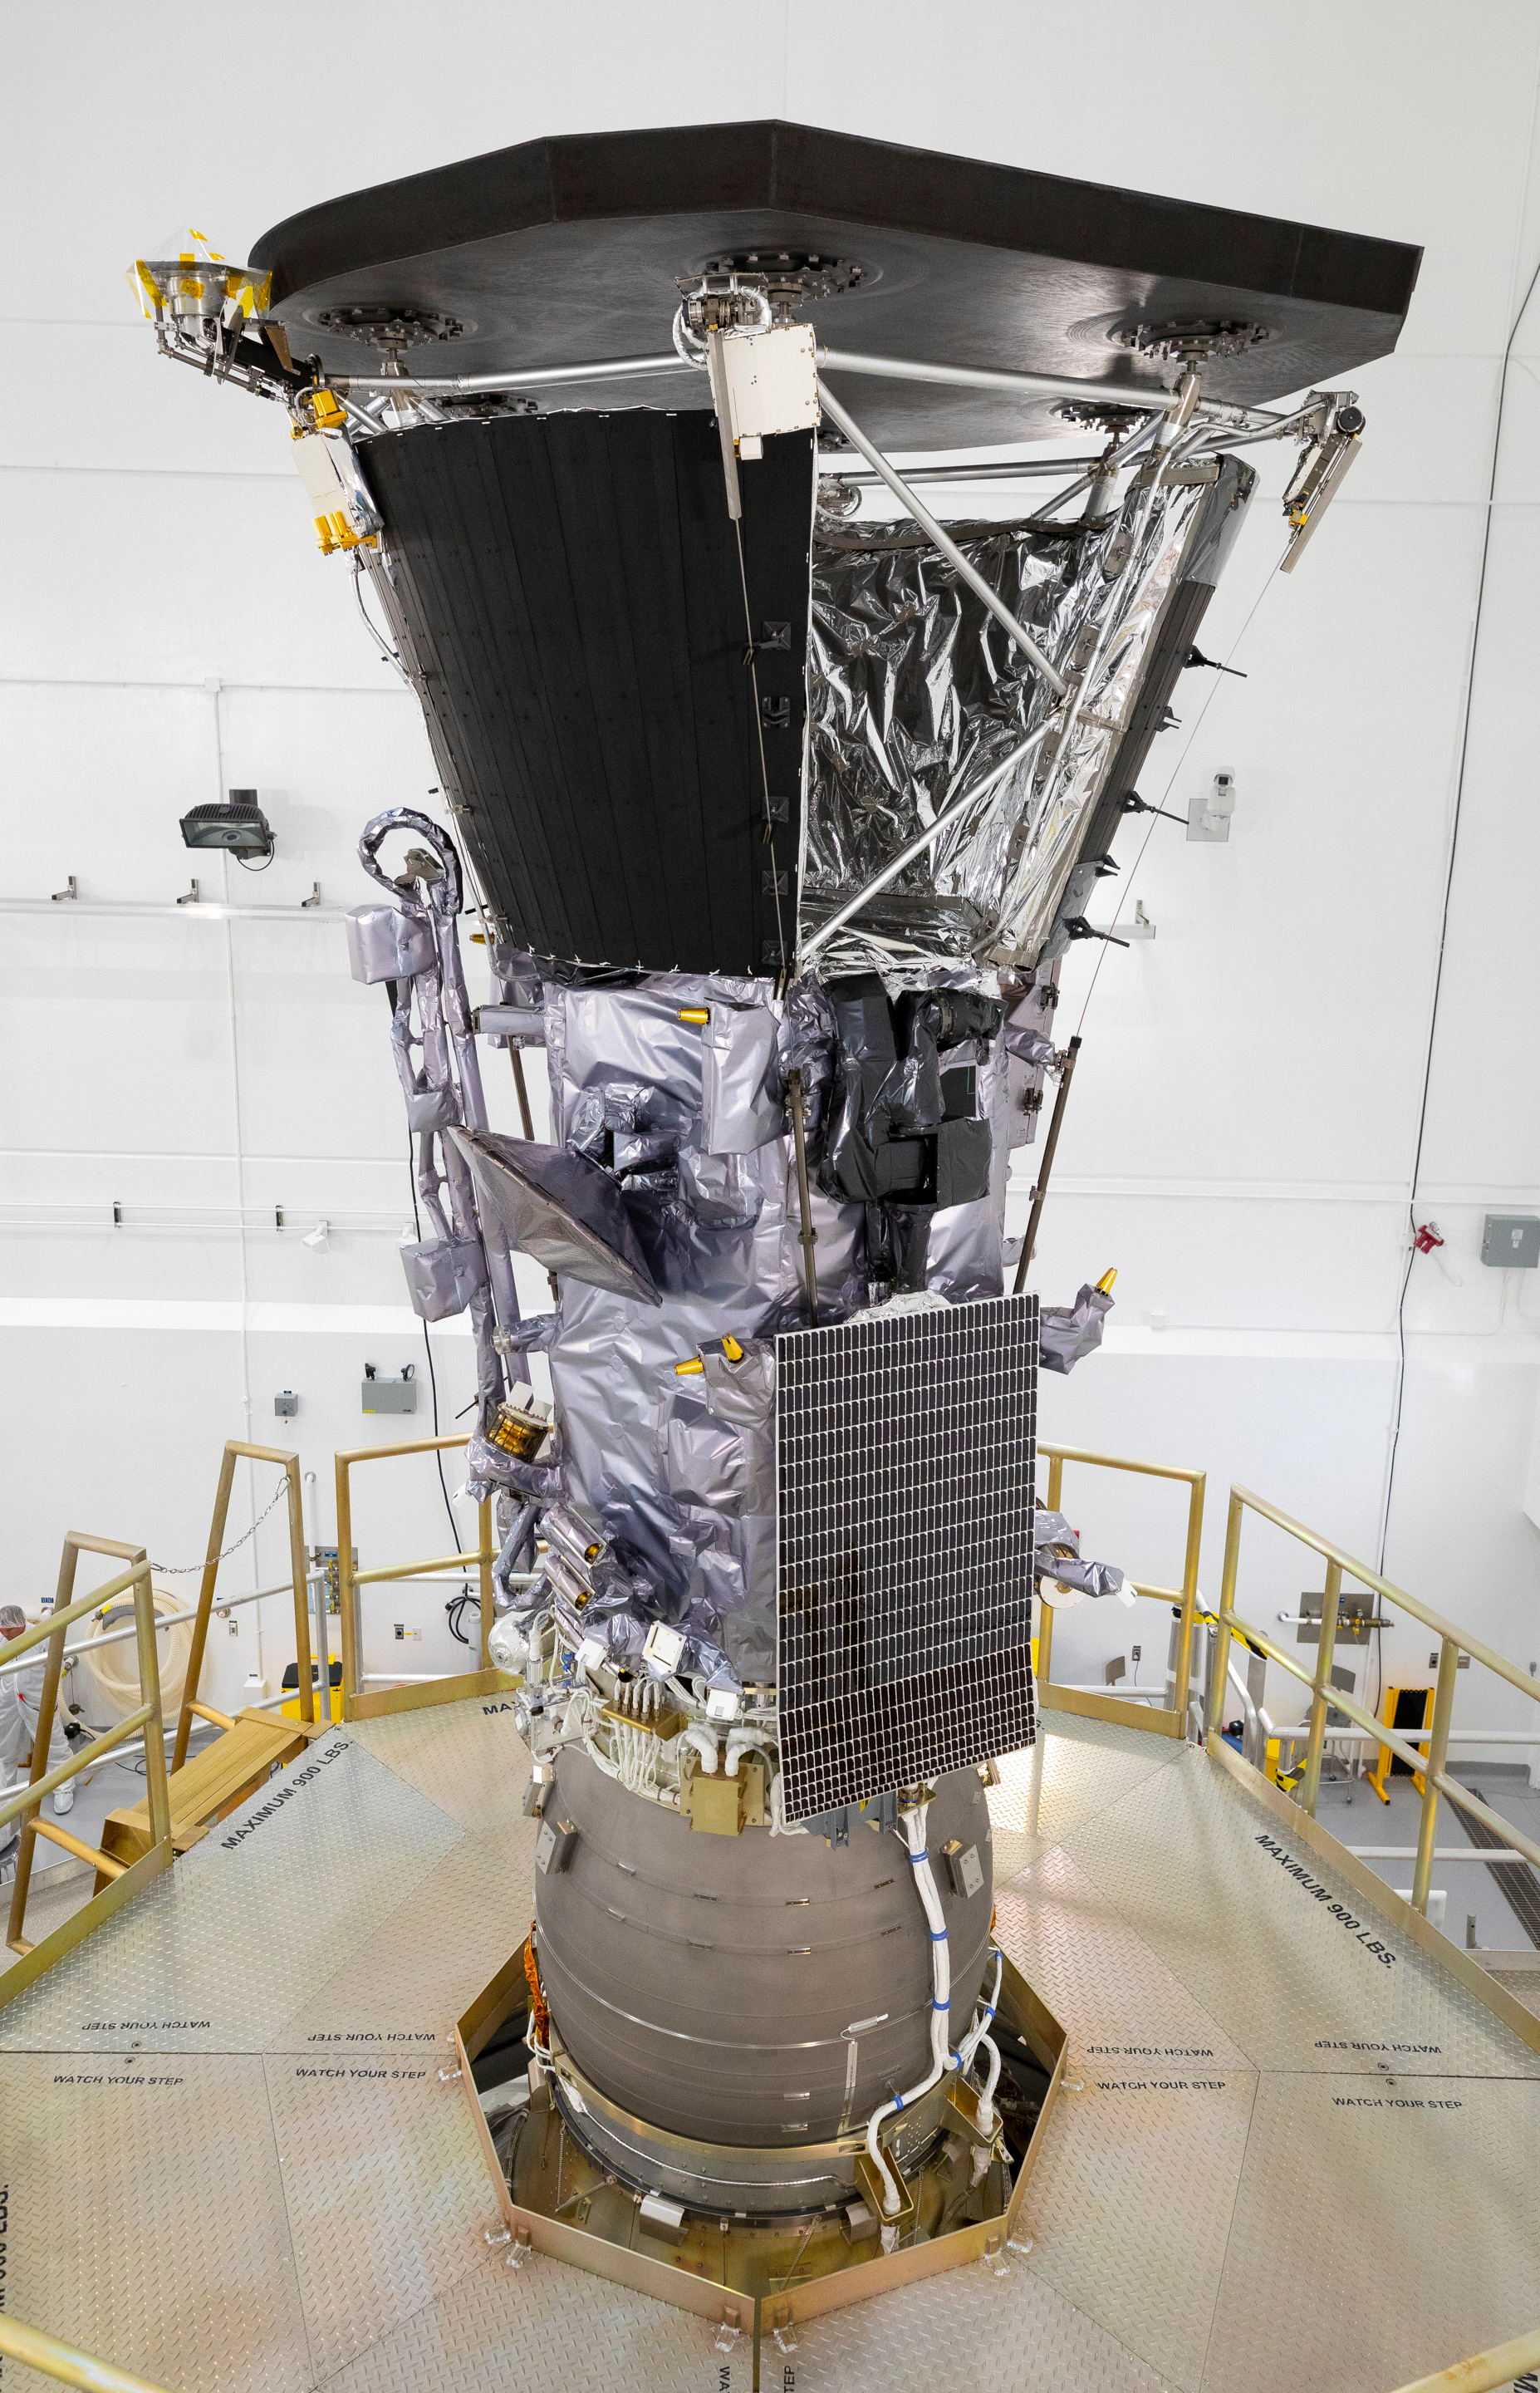 Parker Solar Probe Blue Star Cold Room Wiring Diagram Nasas Is Shown Here Mated To Its Third Stage Rocket Motor On July